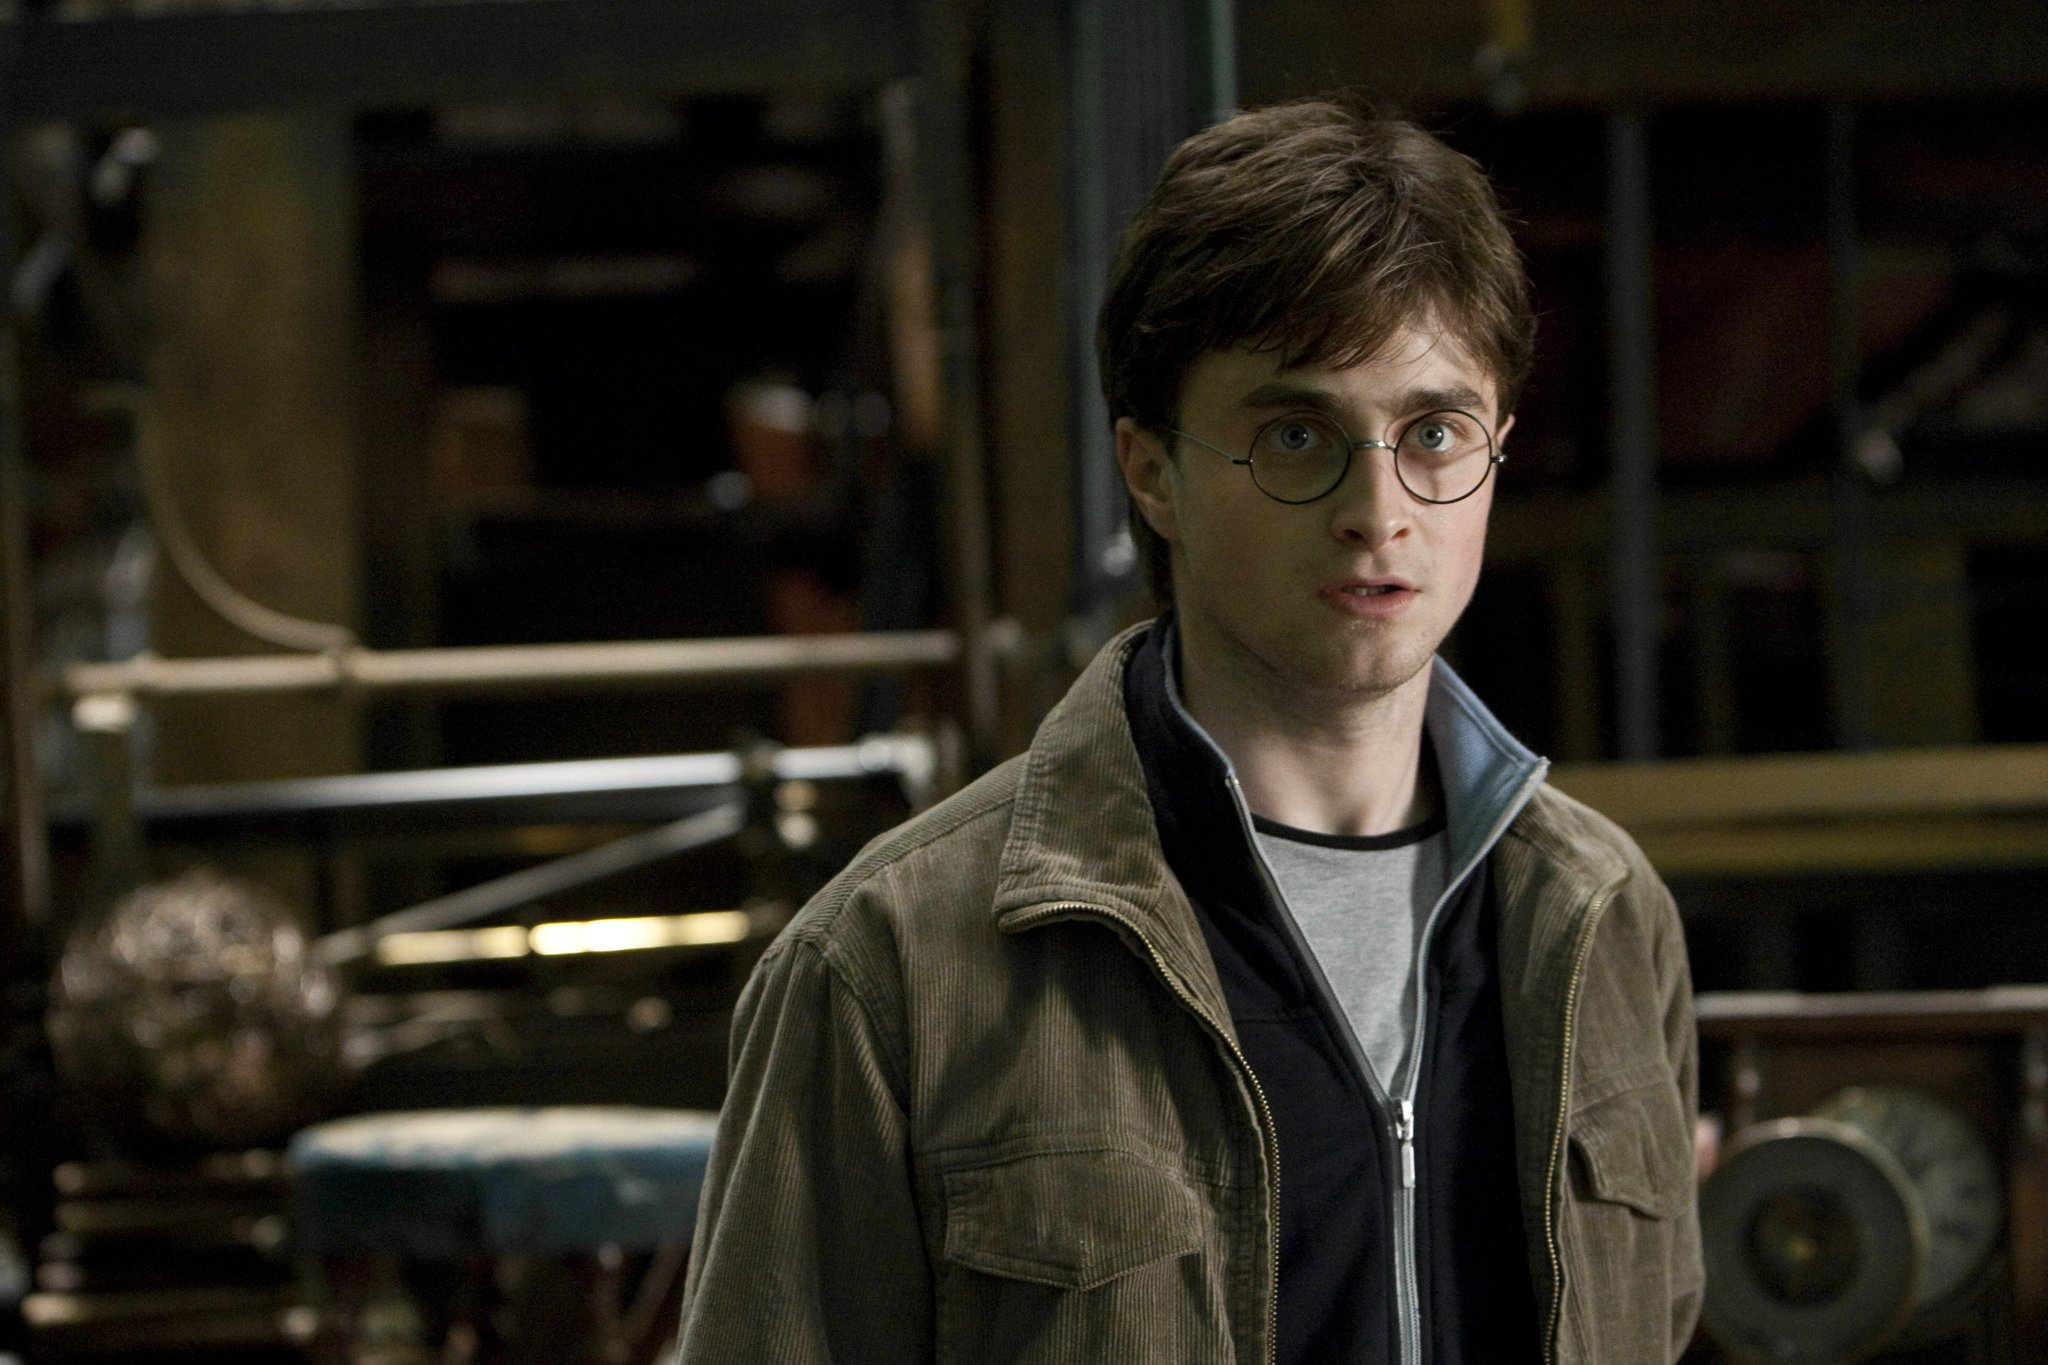 Happy birthday to Daniel Radcliffe.   Seen here as Harry Potter in and the Deathly Hallows Part 2.